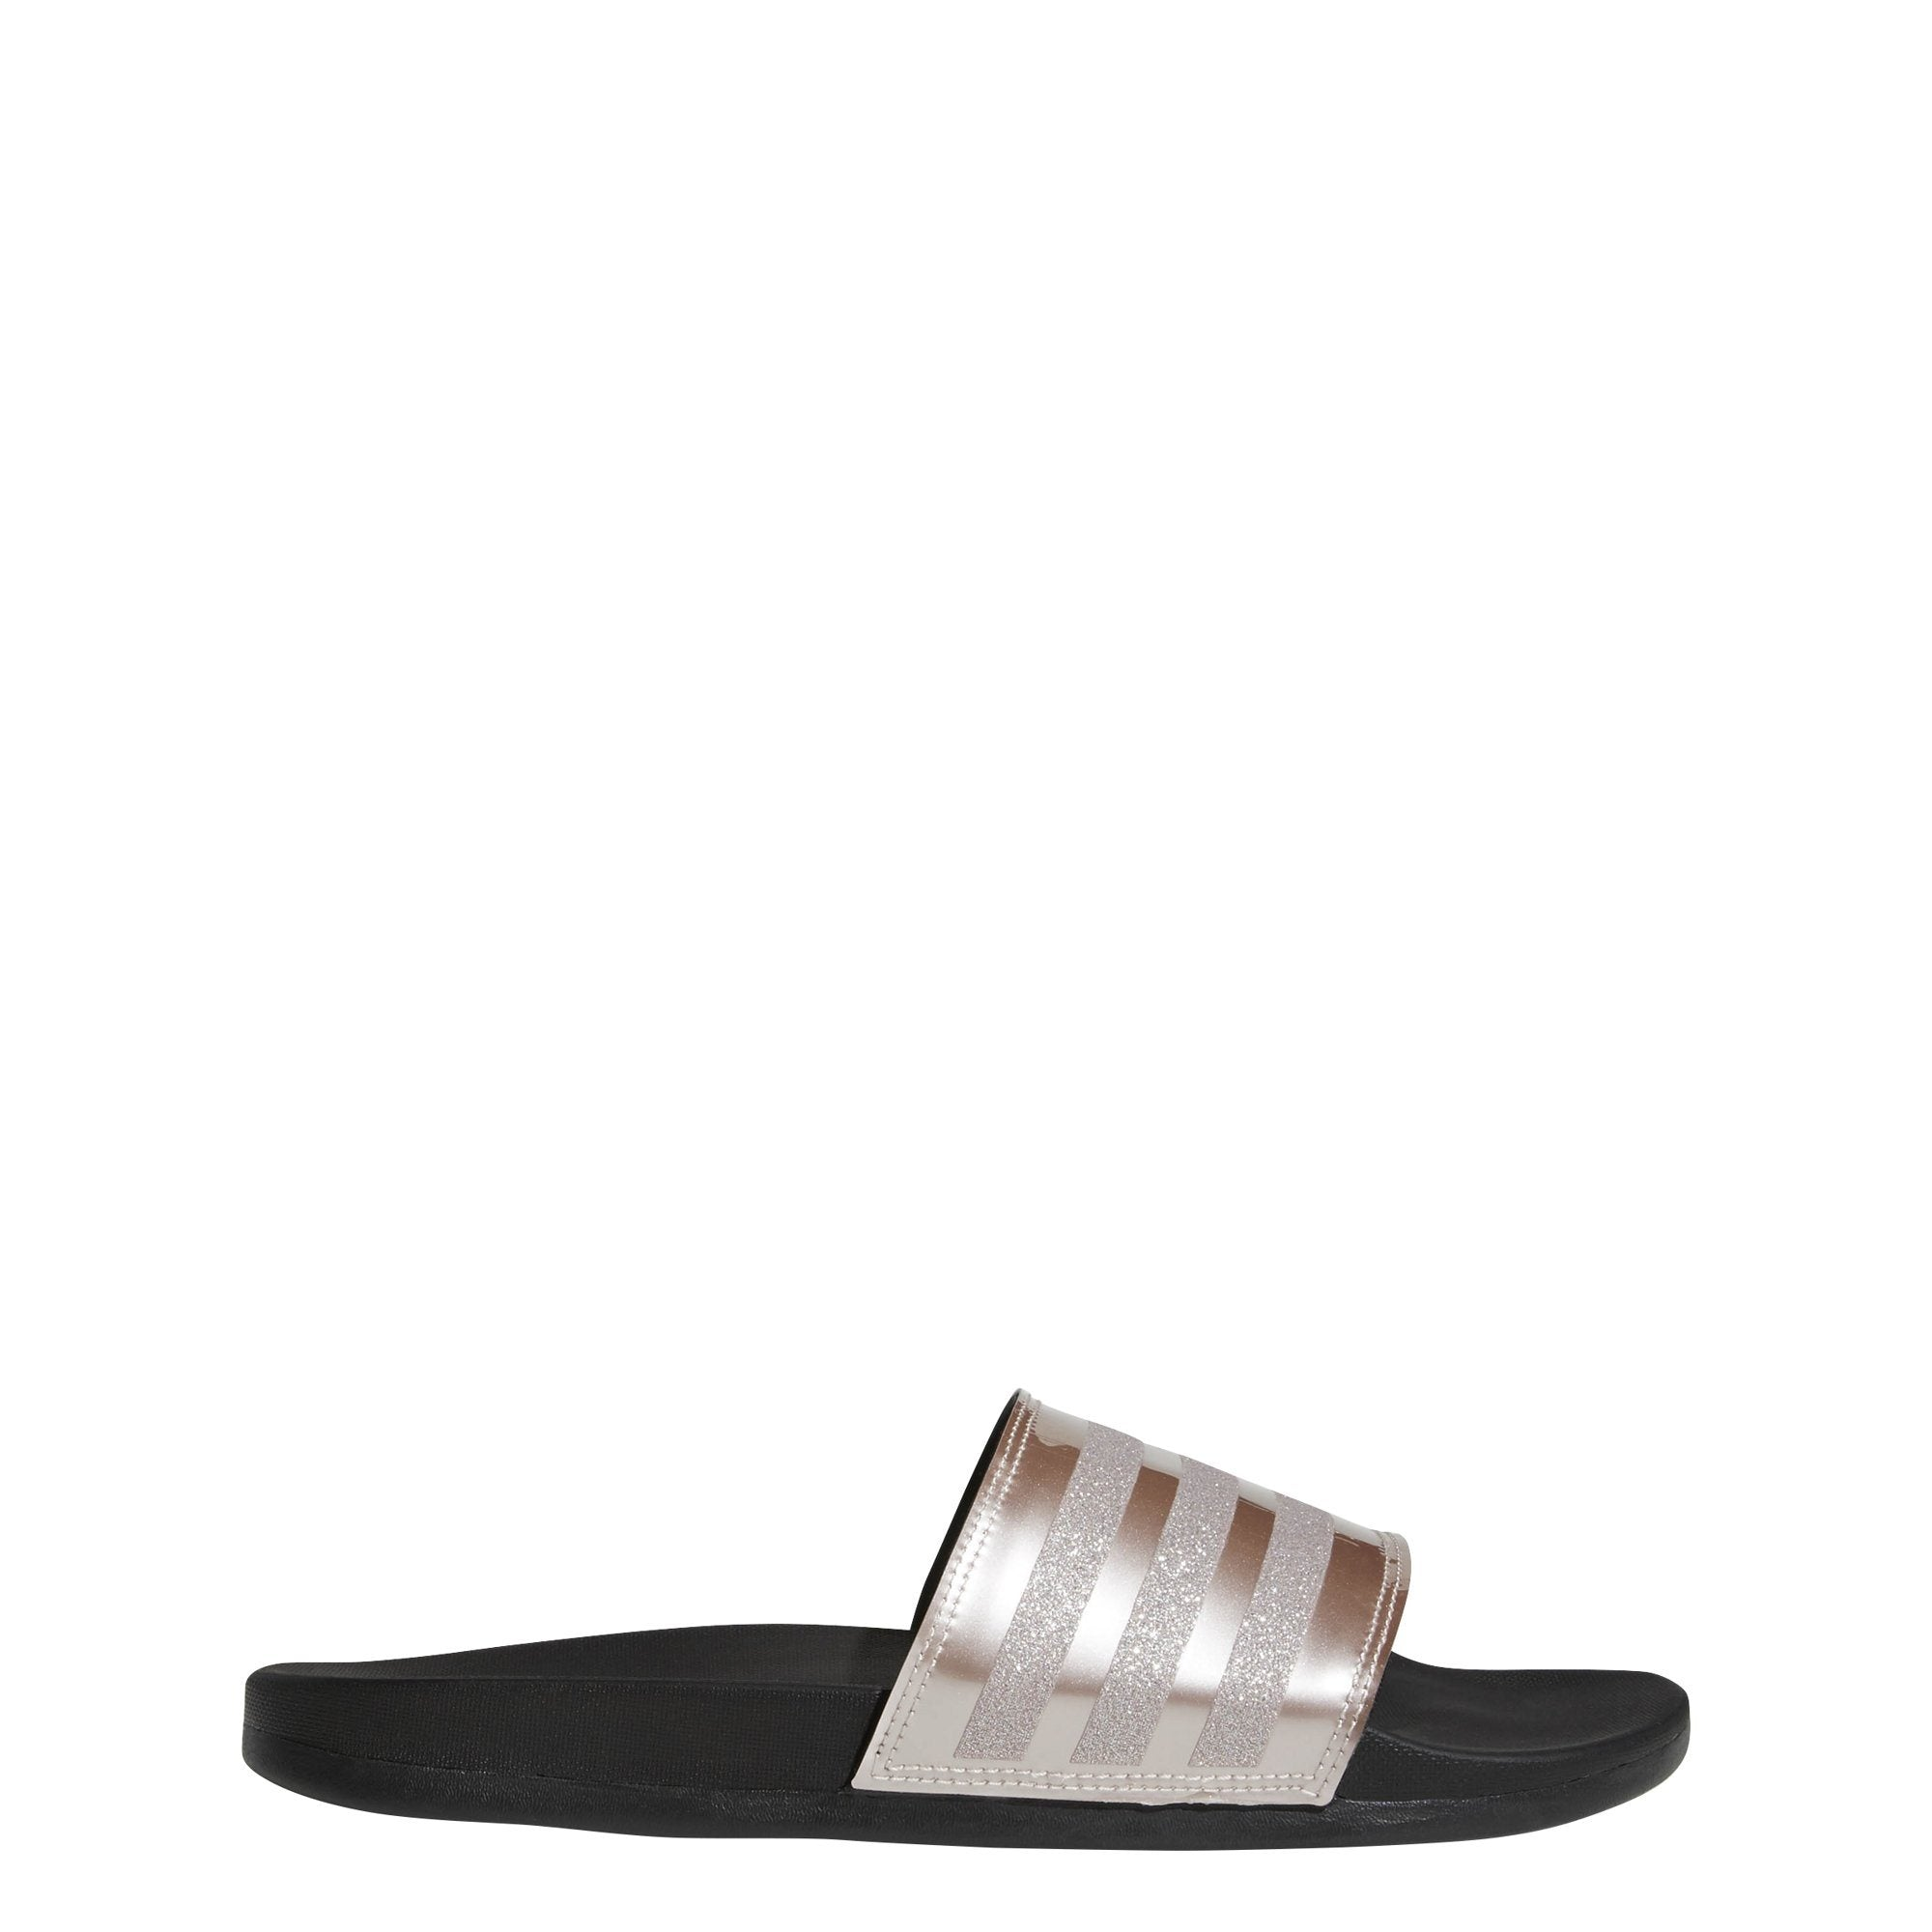 Adidas Adilette Comfort Slides - Vapour Grey Metallic/Core Black SP-Footwear-Slides Adidas